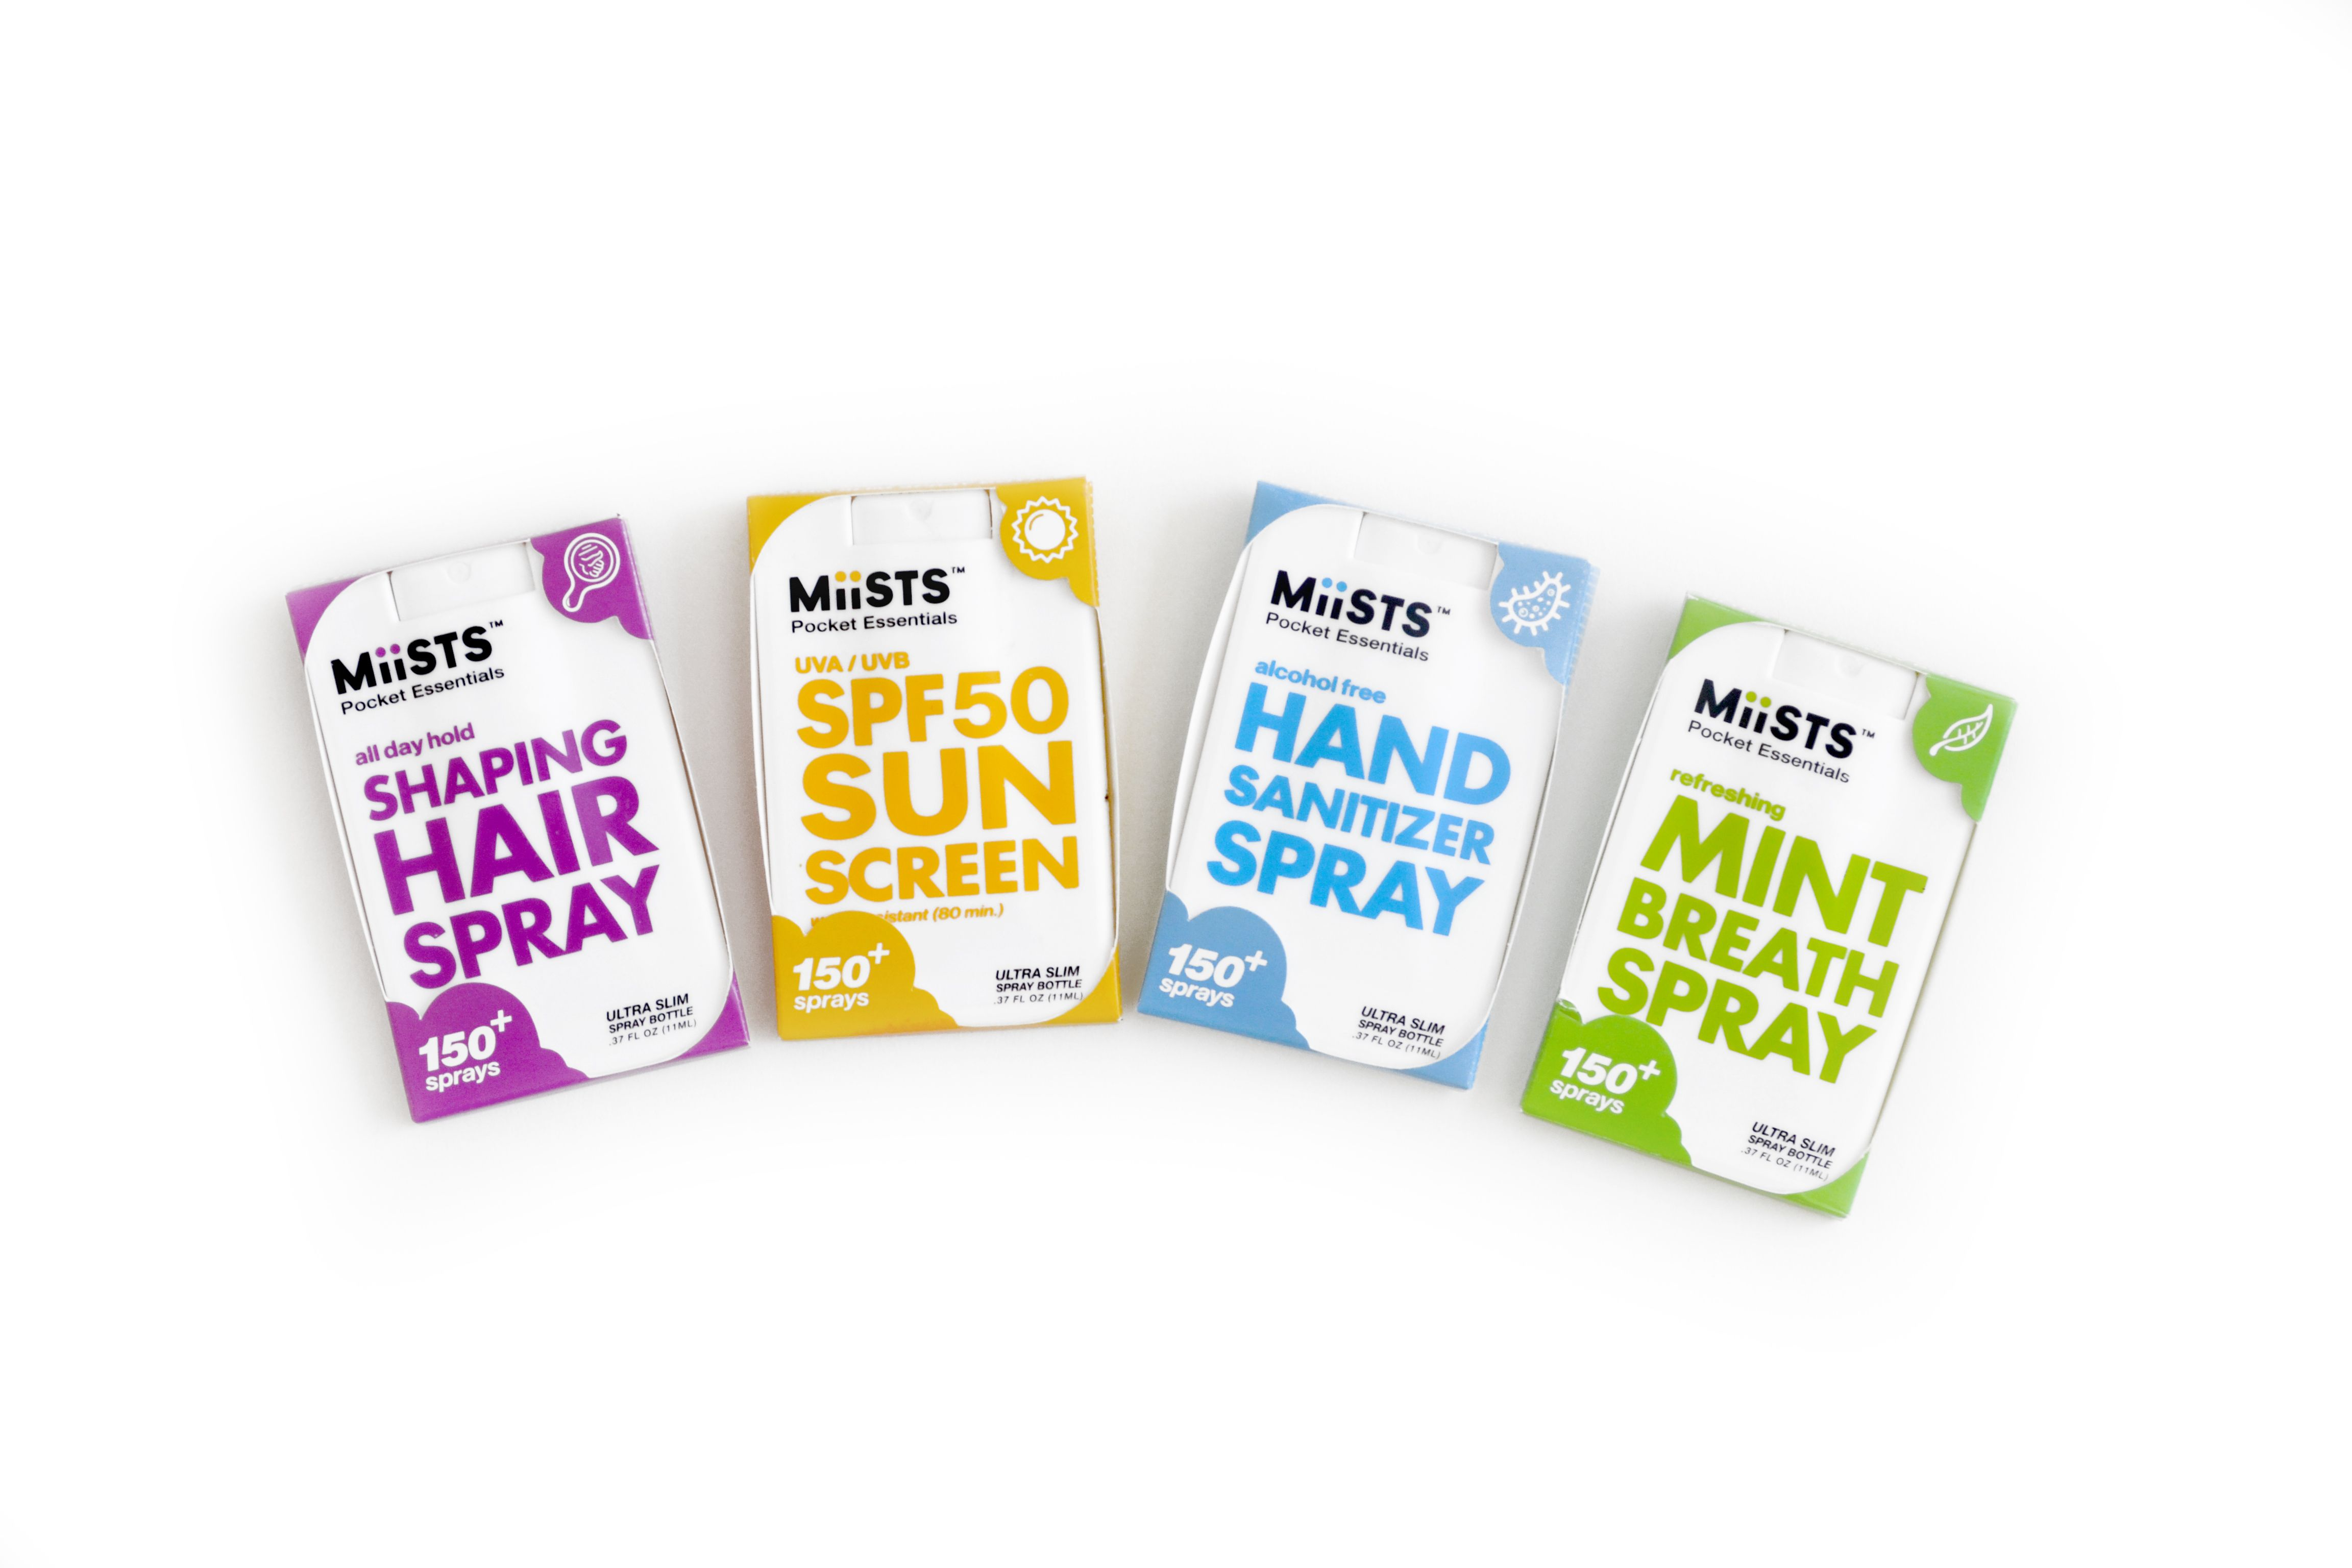 Miists Stain Remover Works On All Water Washable Fabrics